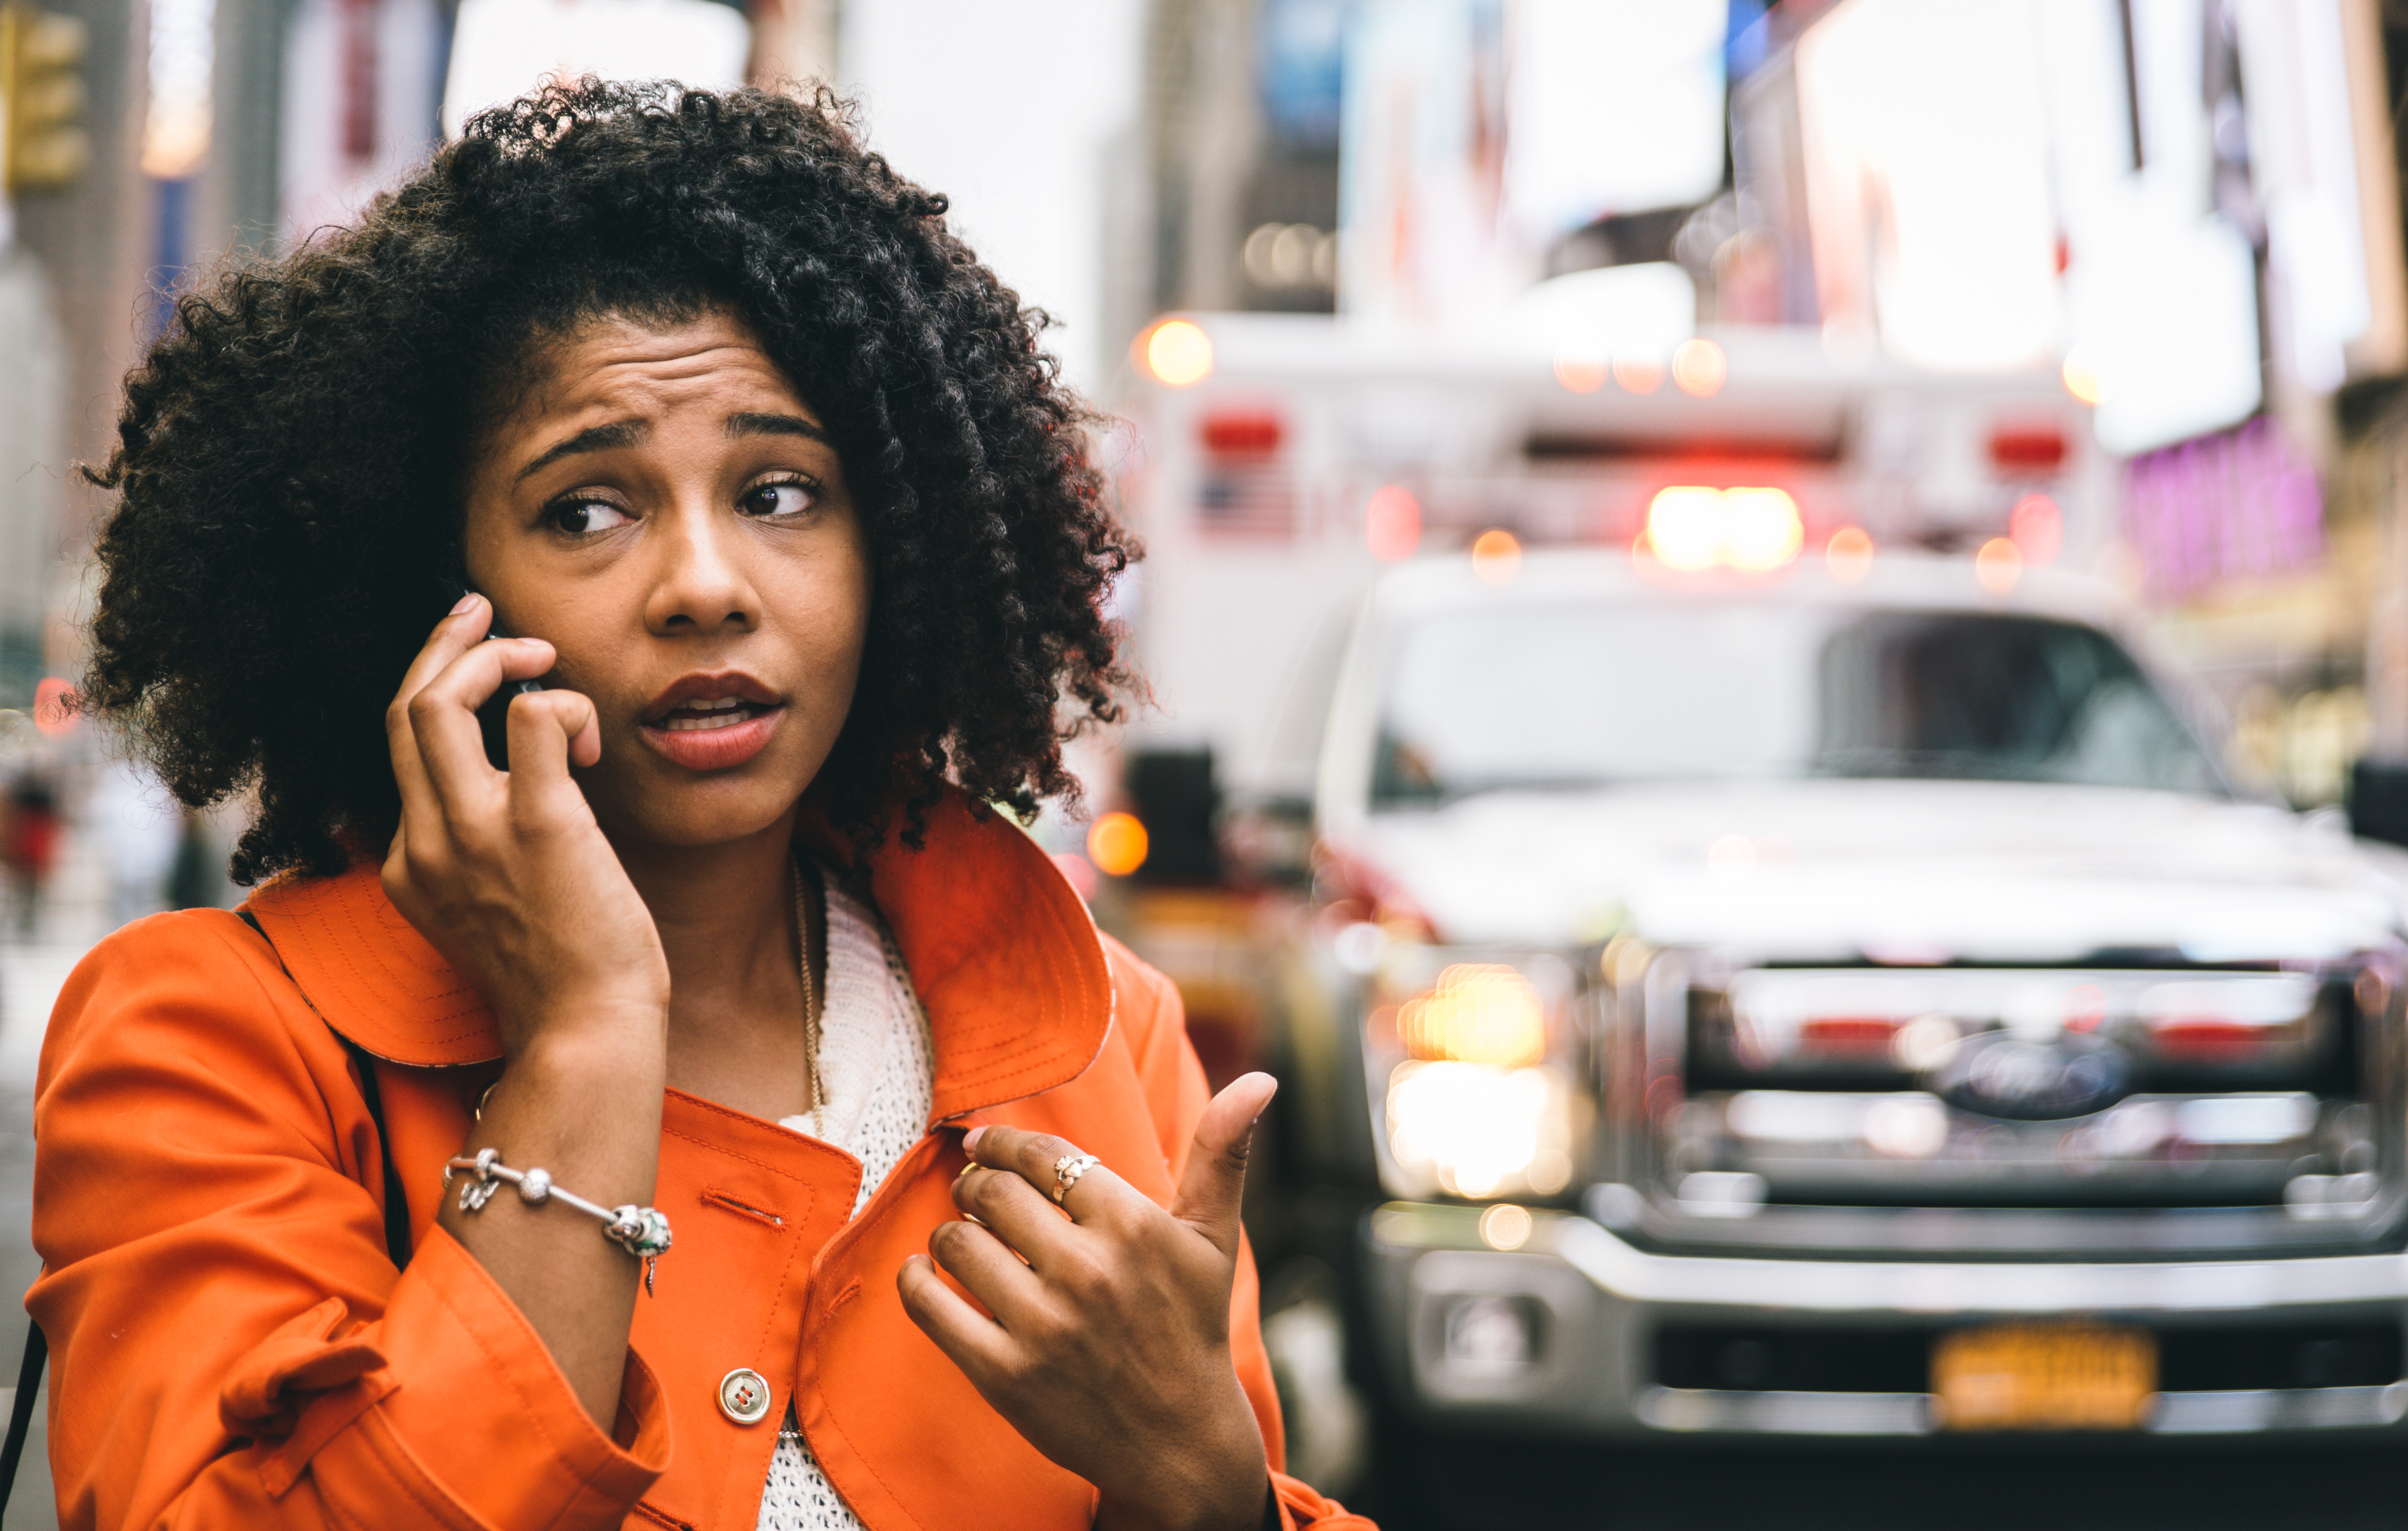 woman-worried-phone-call-car-accident-street